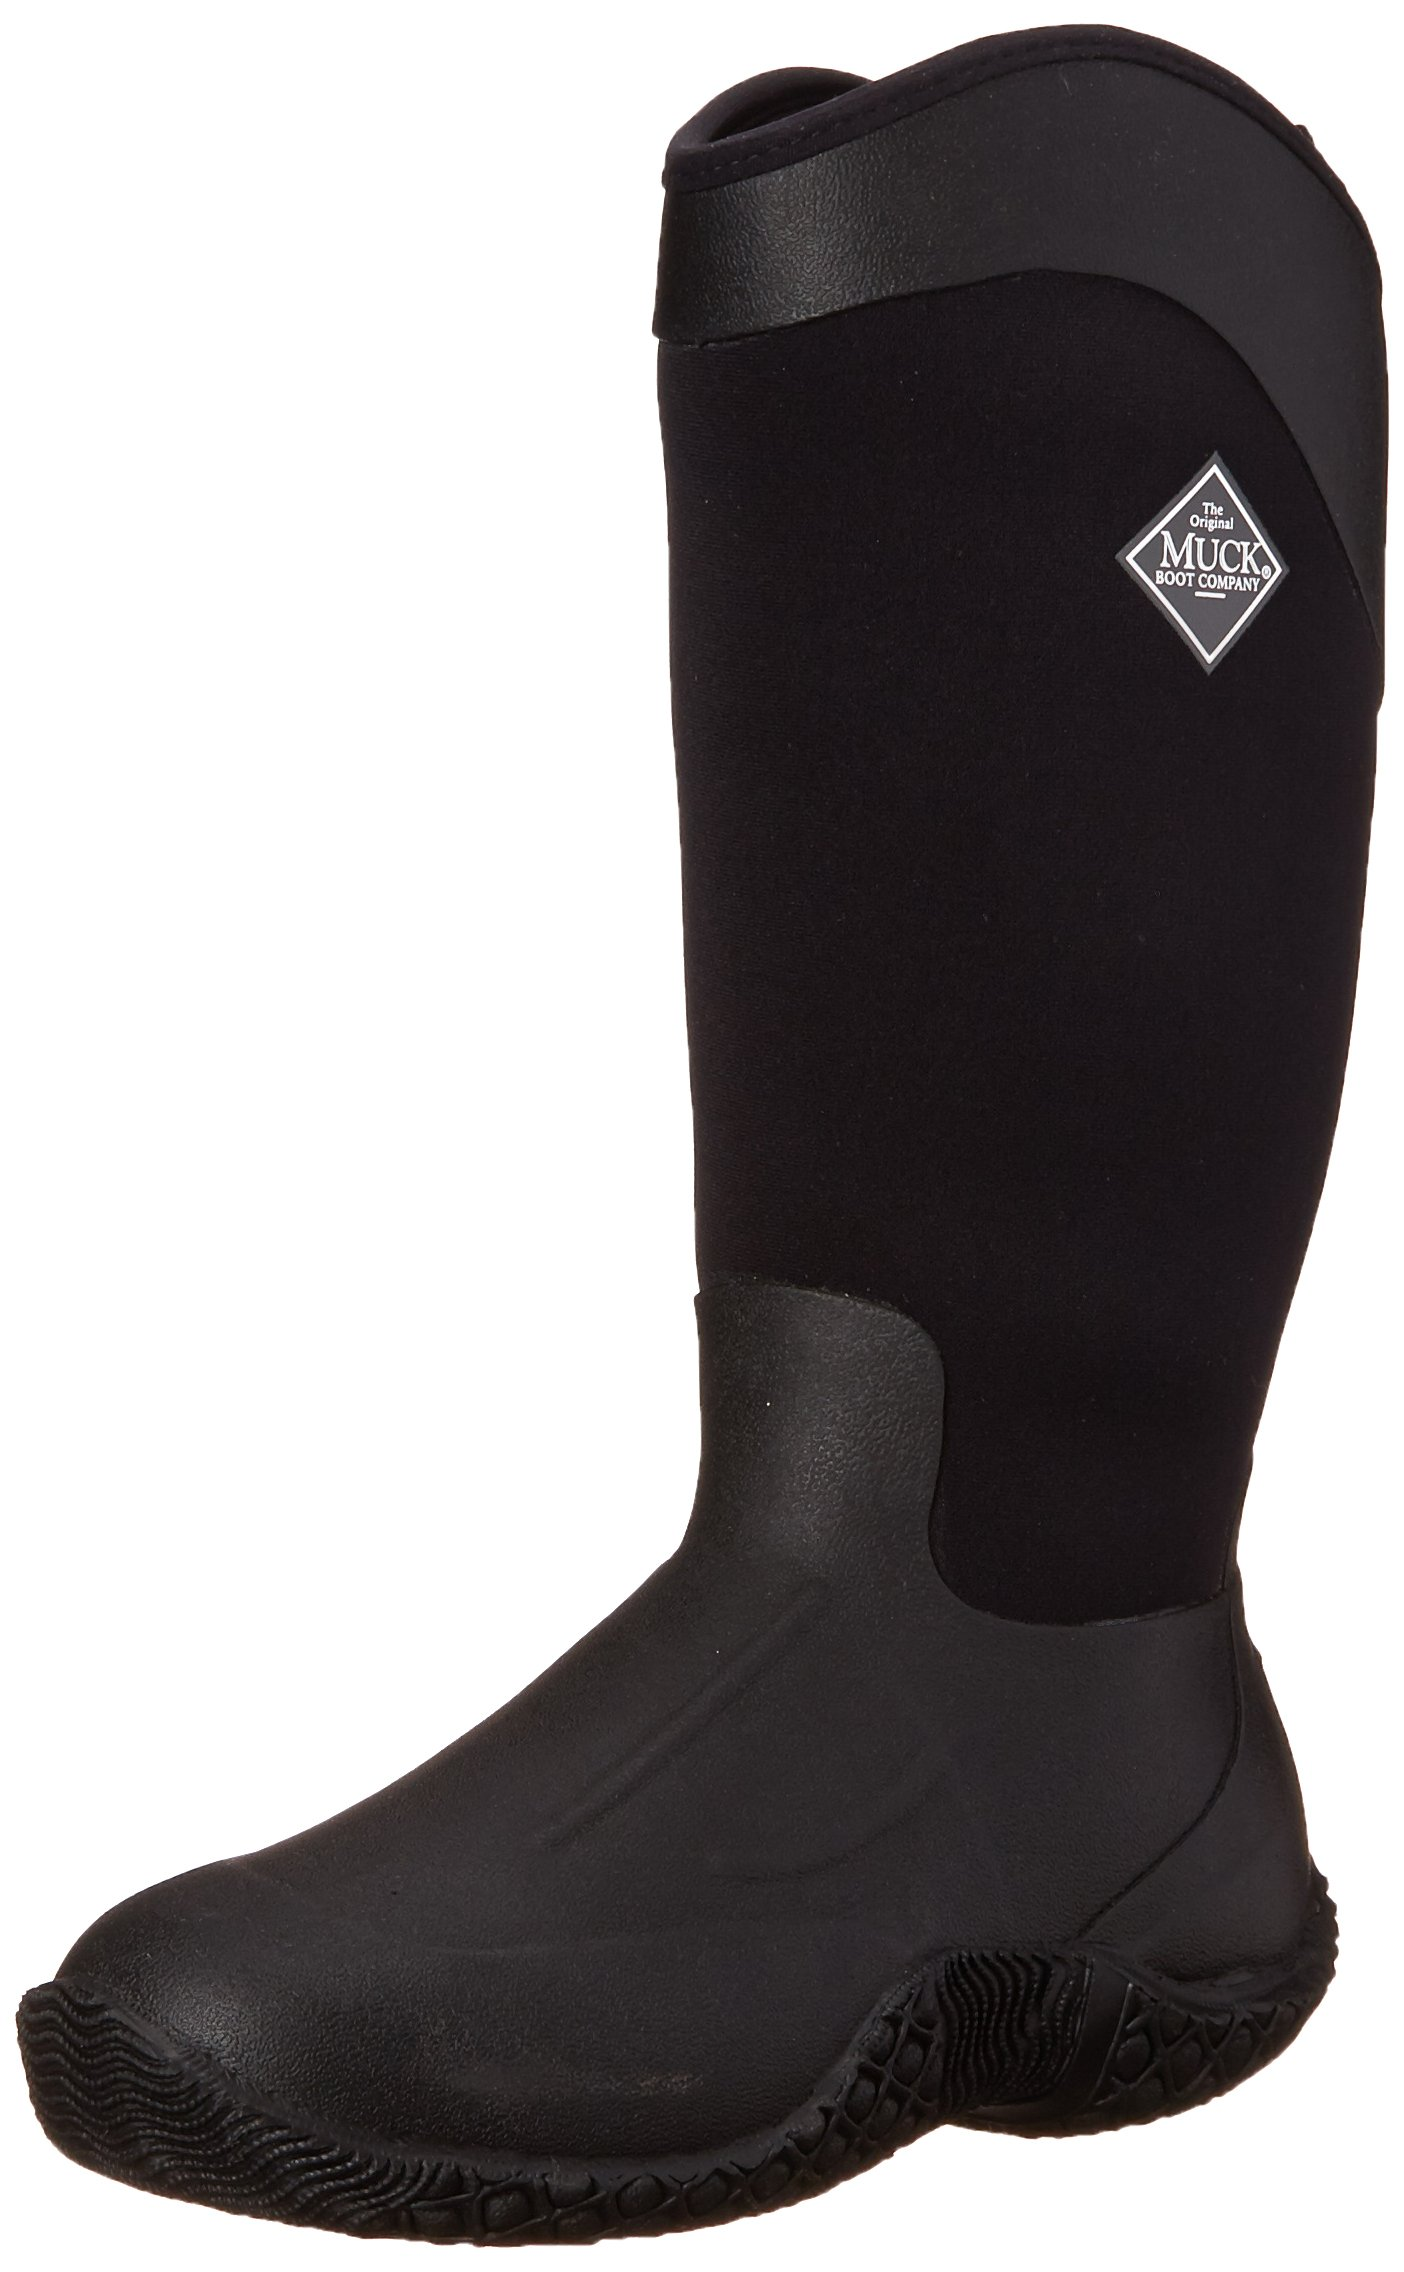 MuckBoots Women's Tack II Tall Equestrian Work Boot, Black, 7 M US